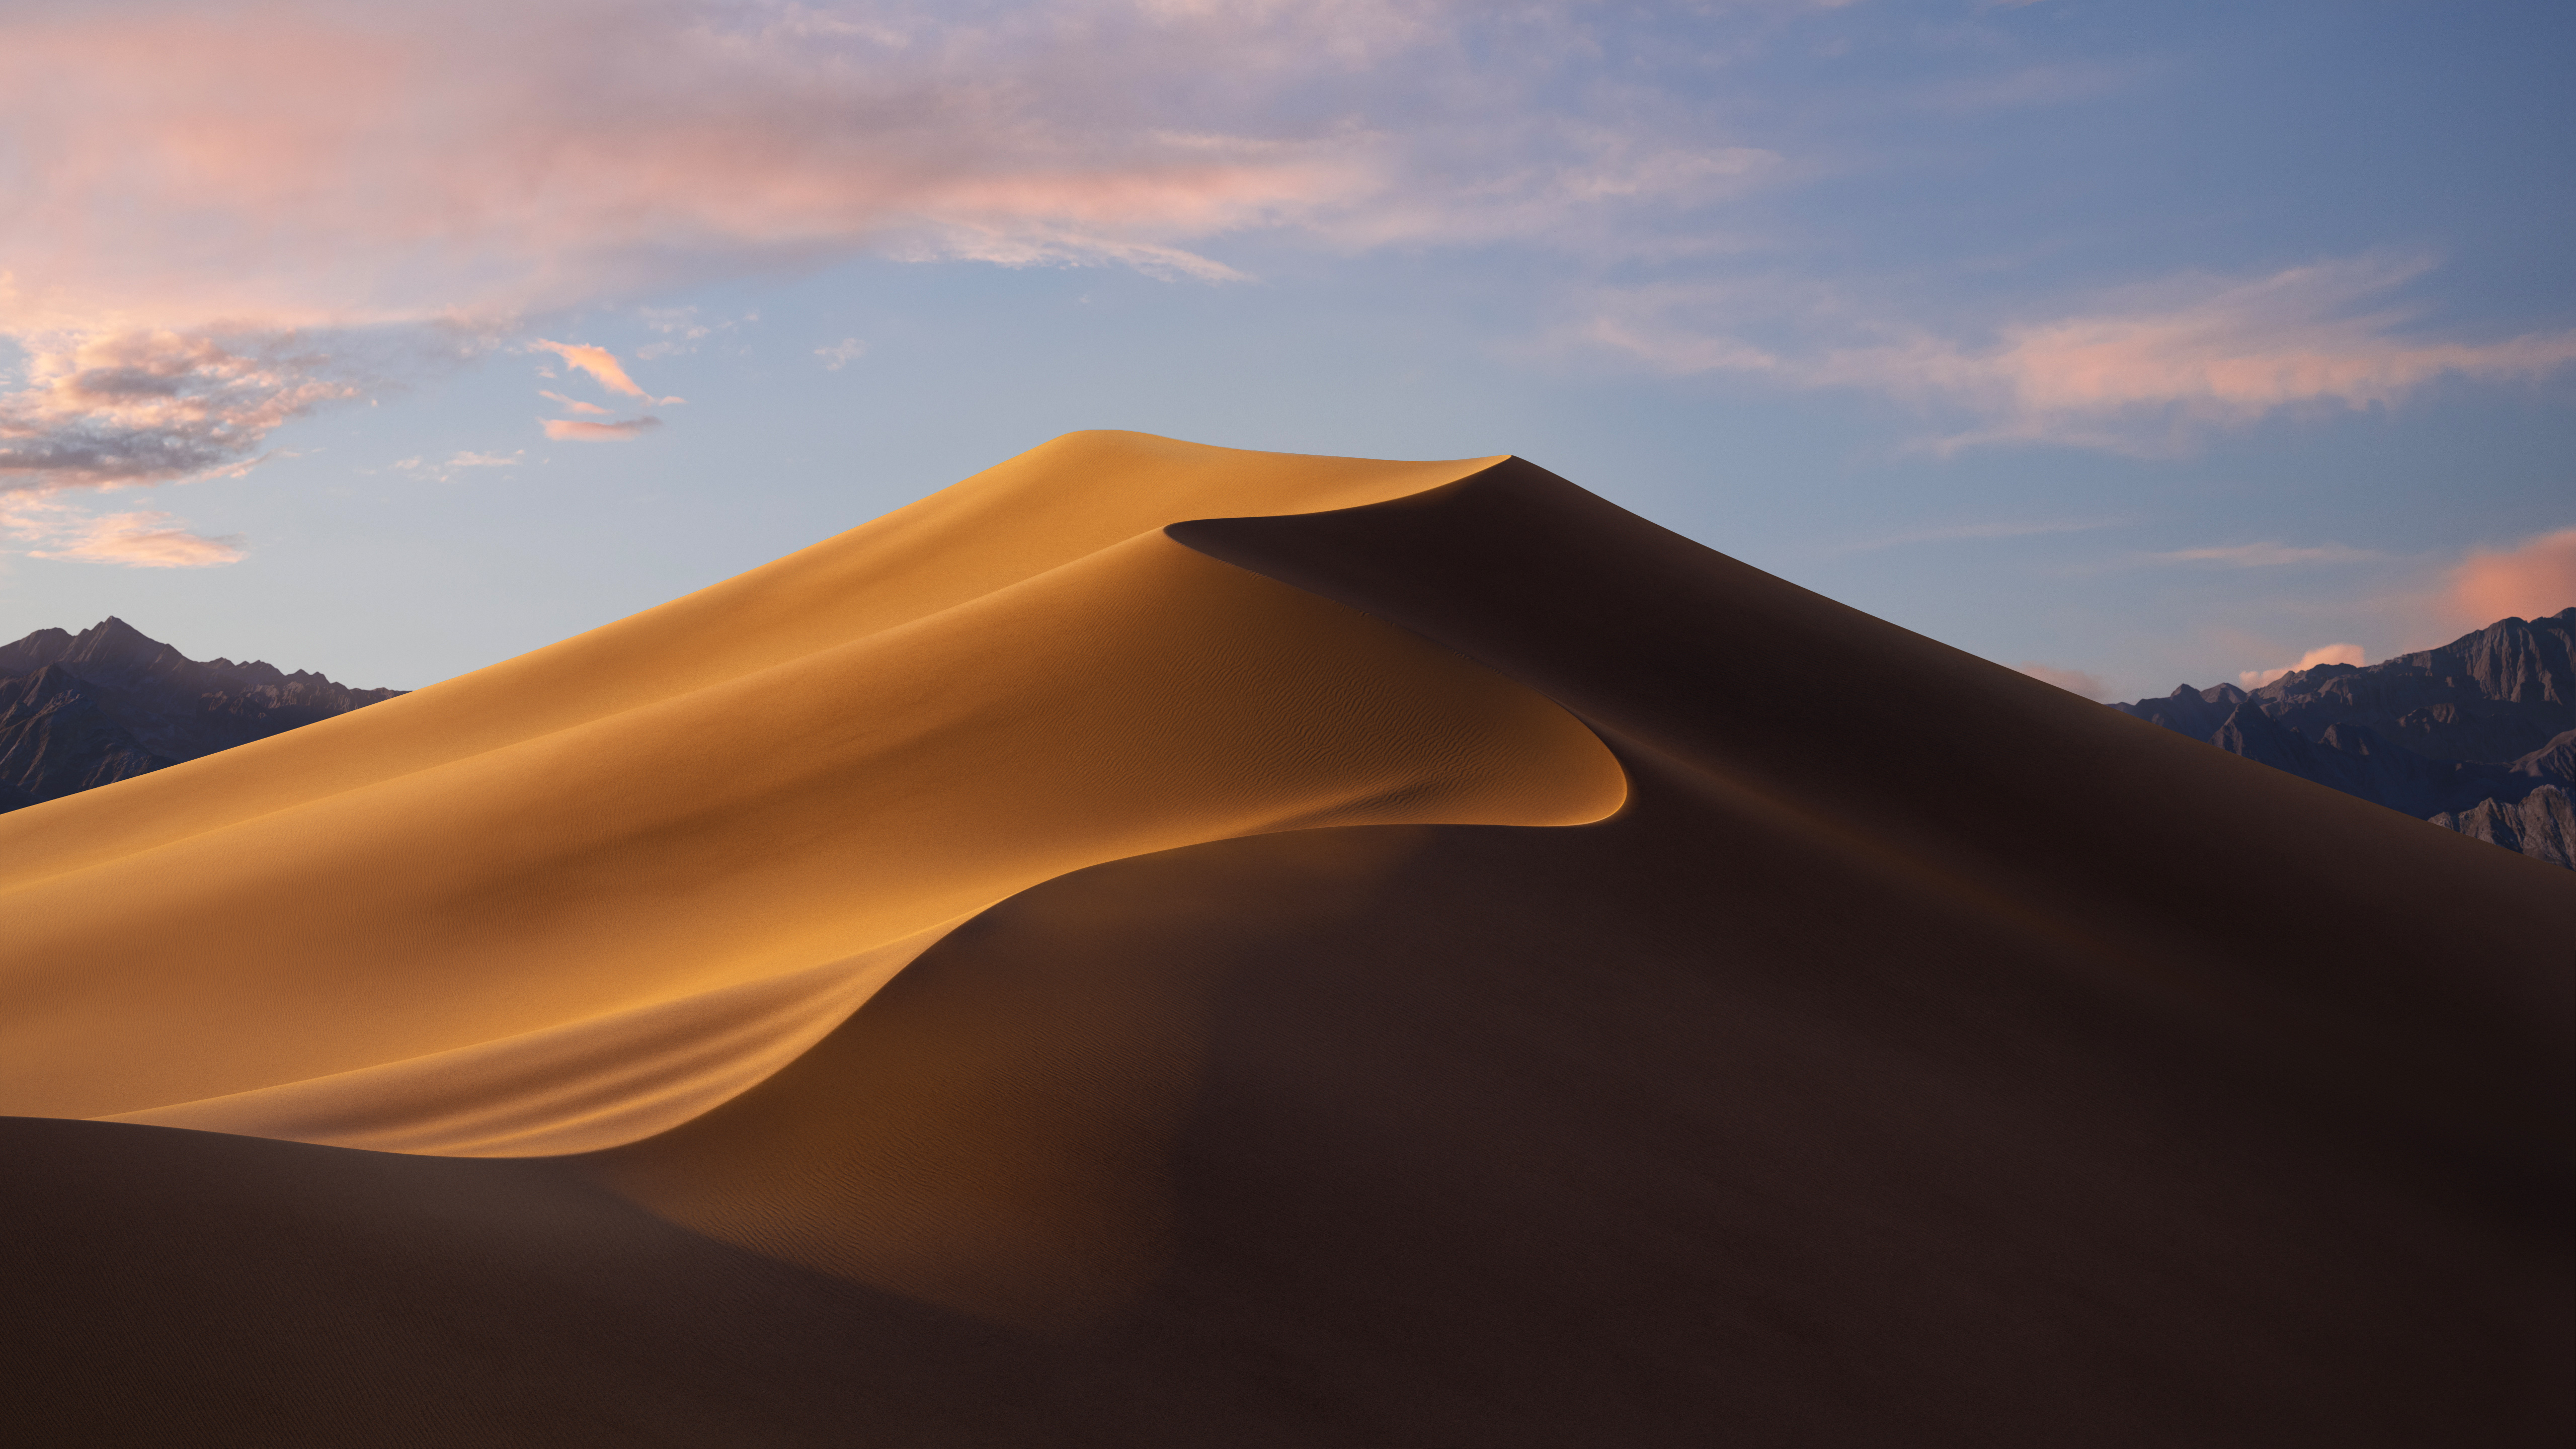 Wallpaper macOS Mojave Day mode